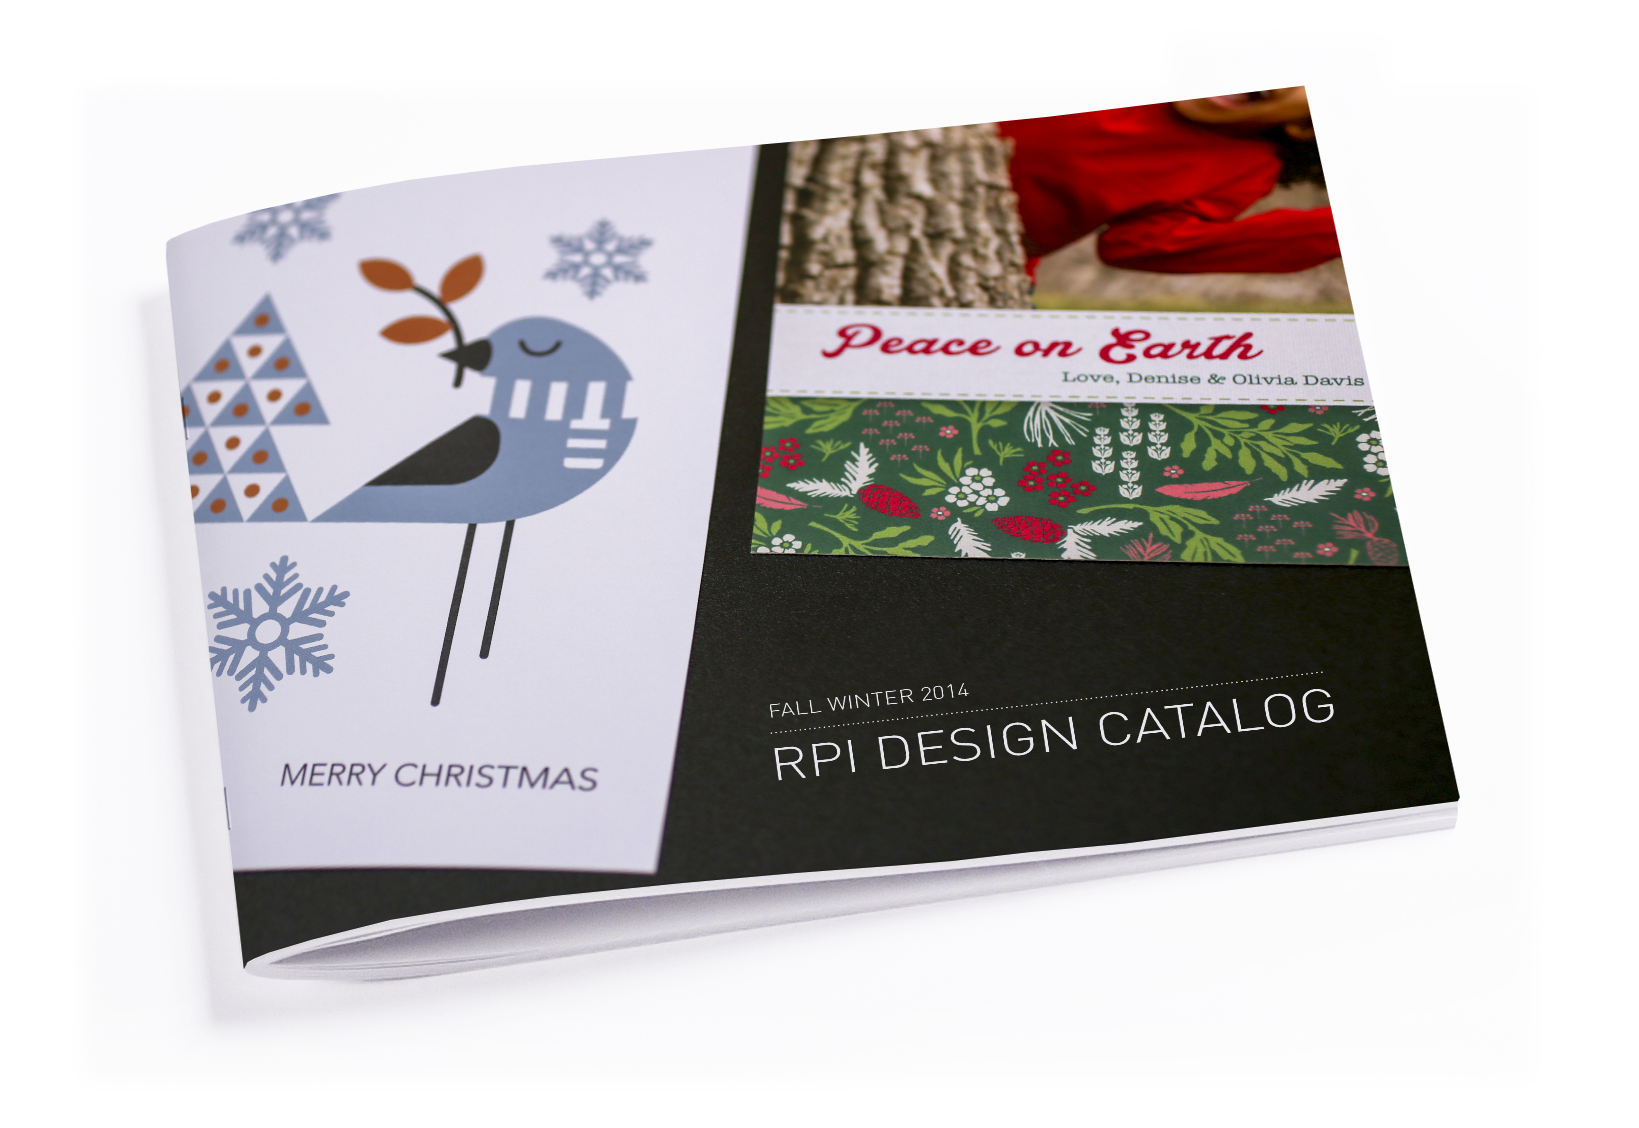 Retailers such as Costco, Shutterflyand TinyPrints choose from card and photo book collections from RPI's 2014 Fall/Winter Catalog to carry in their online stores.  I developed RPI's photo merchandise collections leading with extensive trend research and designed for consumer customization.